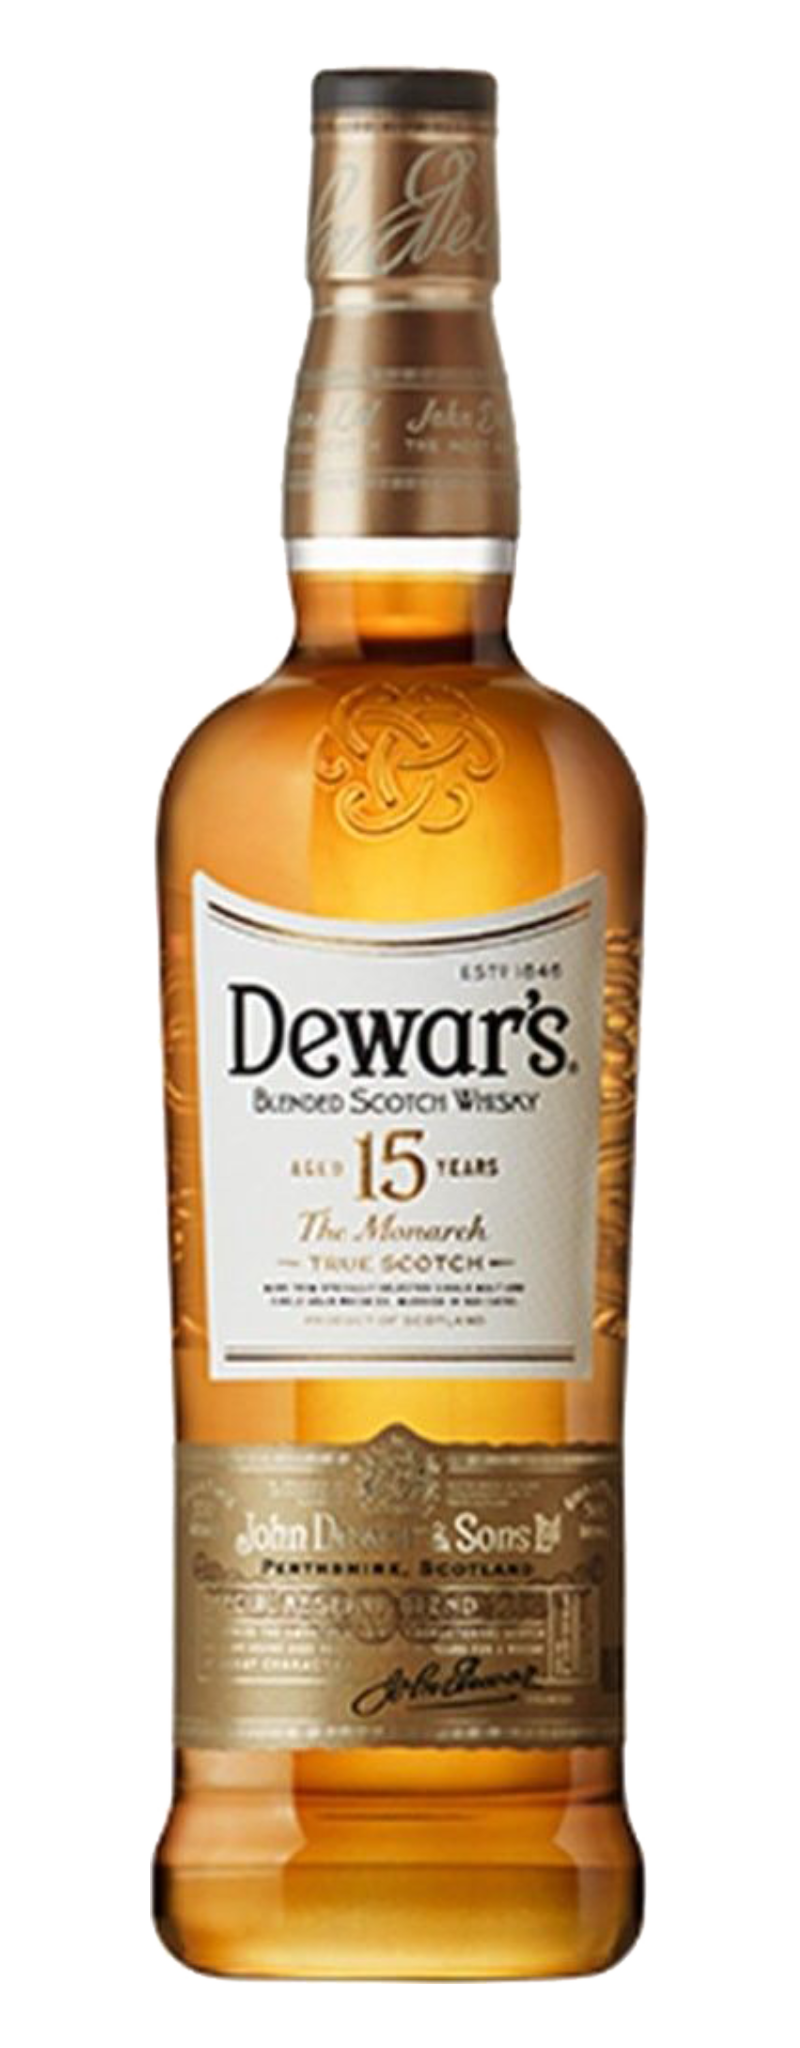 Dewar's The Monarch 15 year old  - 750ml